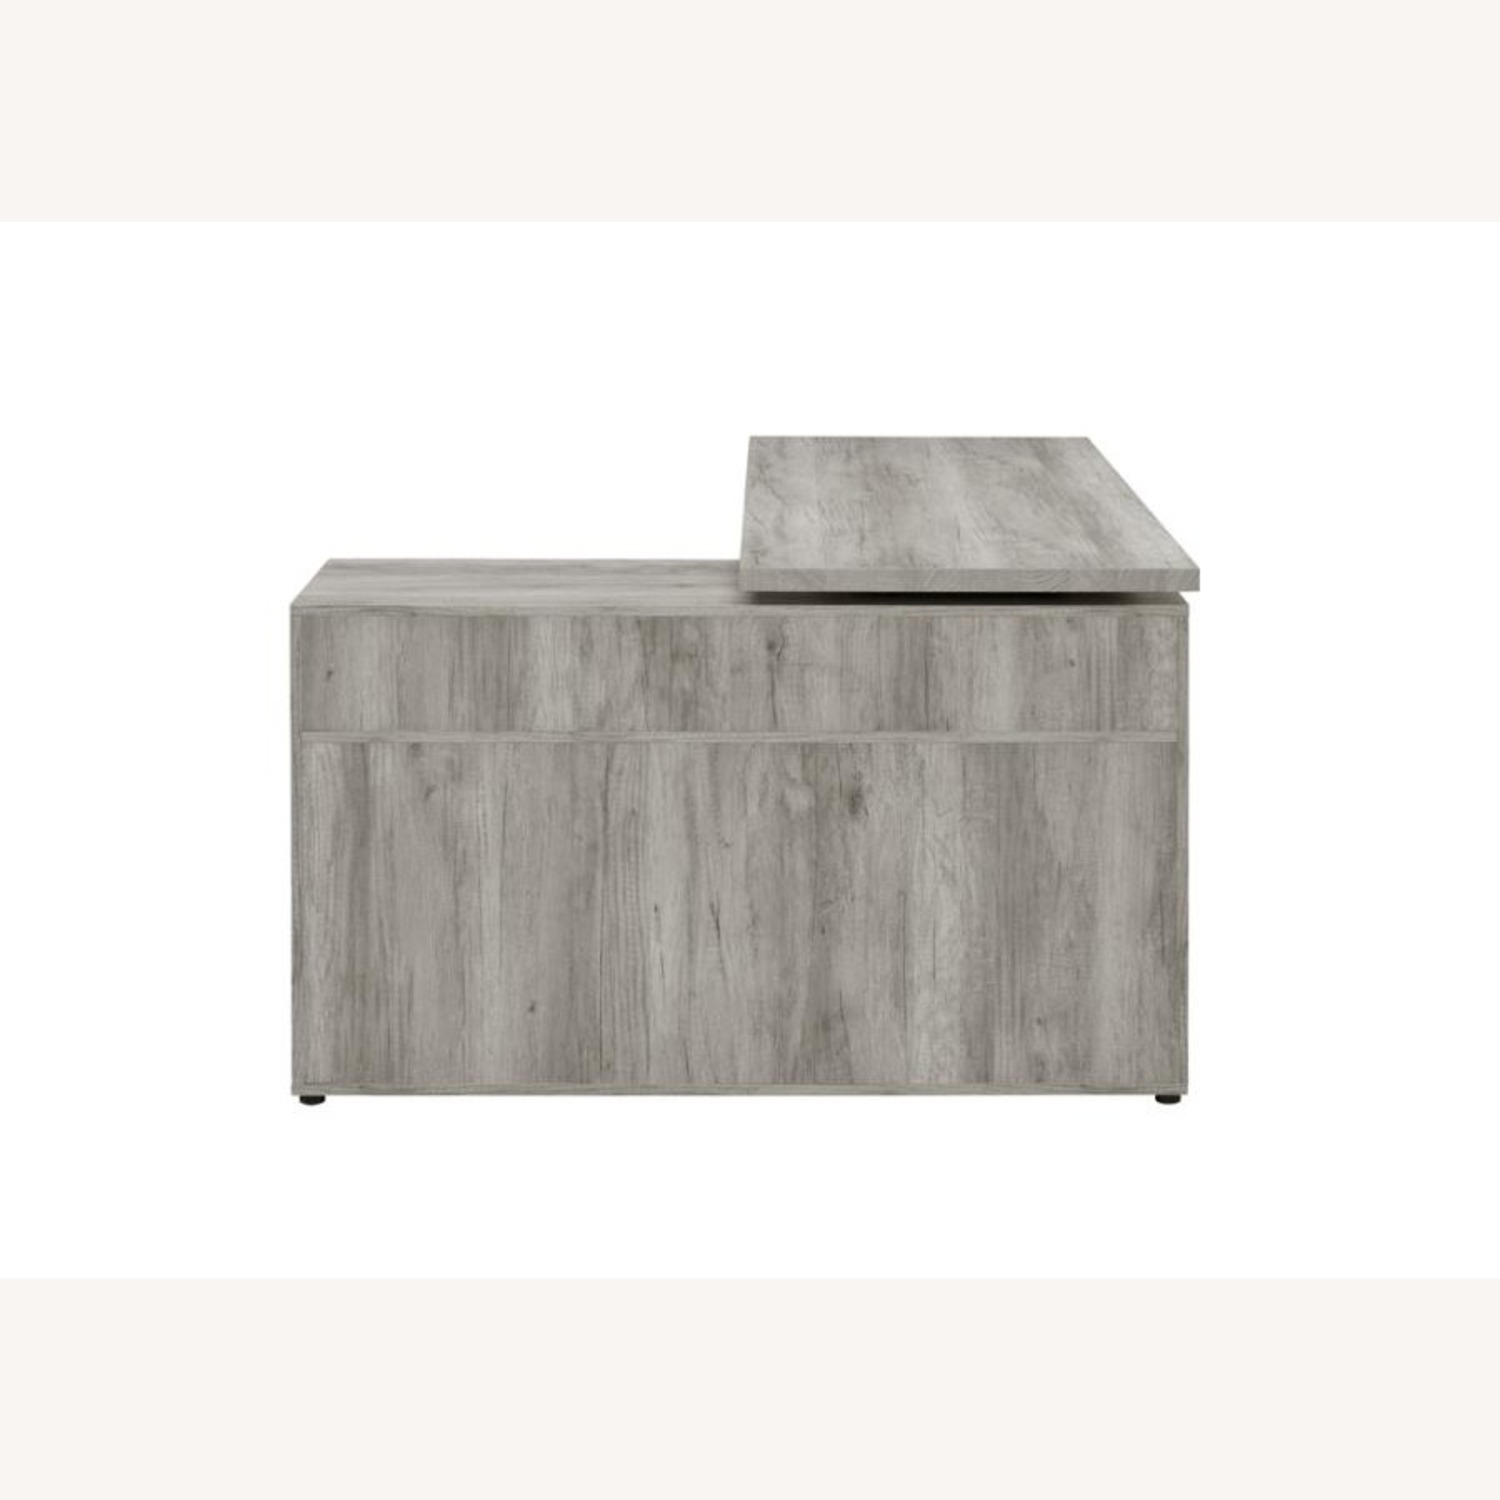 L-Shaped Office Desk In Grey Driftwood Finish - image-6